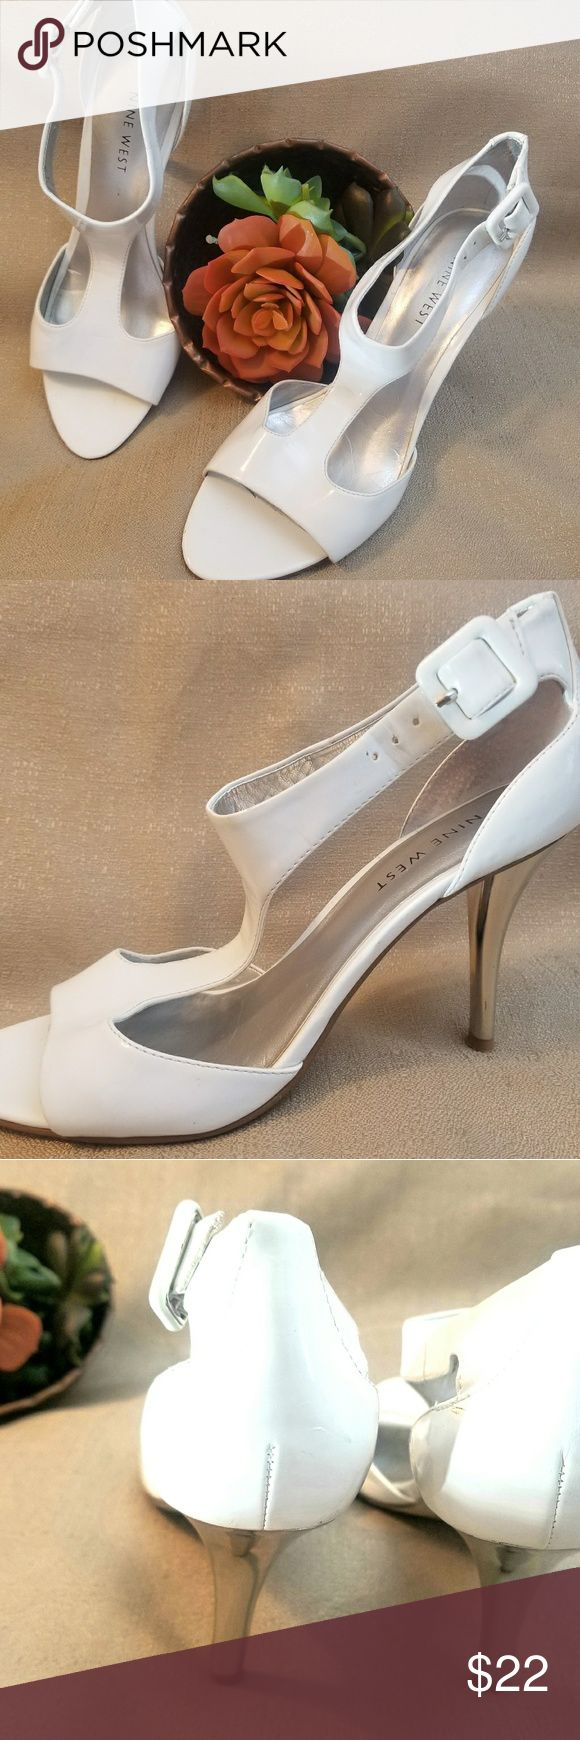 Nine West women's heels open toe WHITE 6 1/2 M Women's White Dress heels from Nine West in size 6.5 M open toe with buckle ankle strap. Heels are metallic silver. Soles have some wear as shown otherwise very nice condition. Perfect to wear under a wedding gown. Nine West Shoes Heels